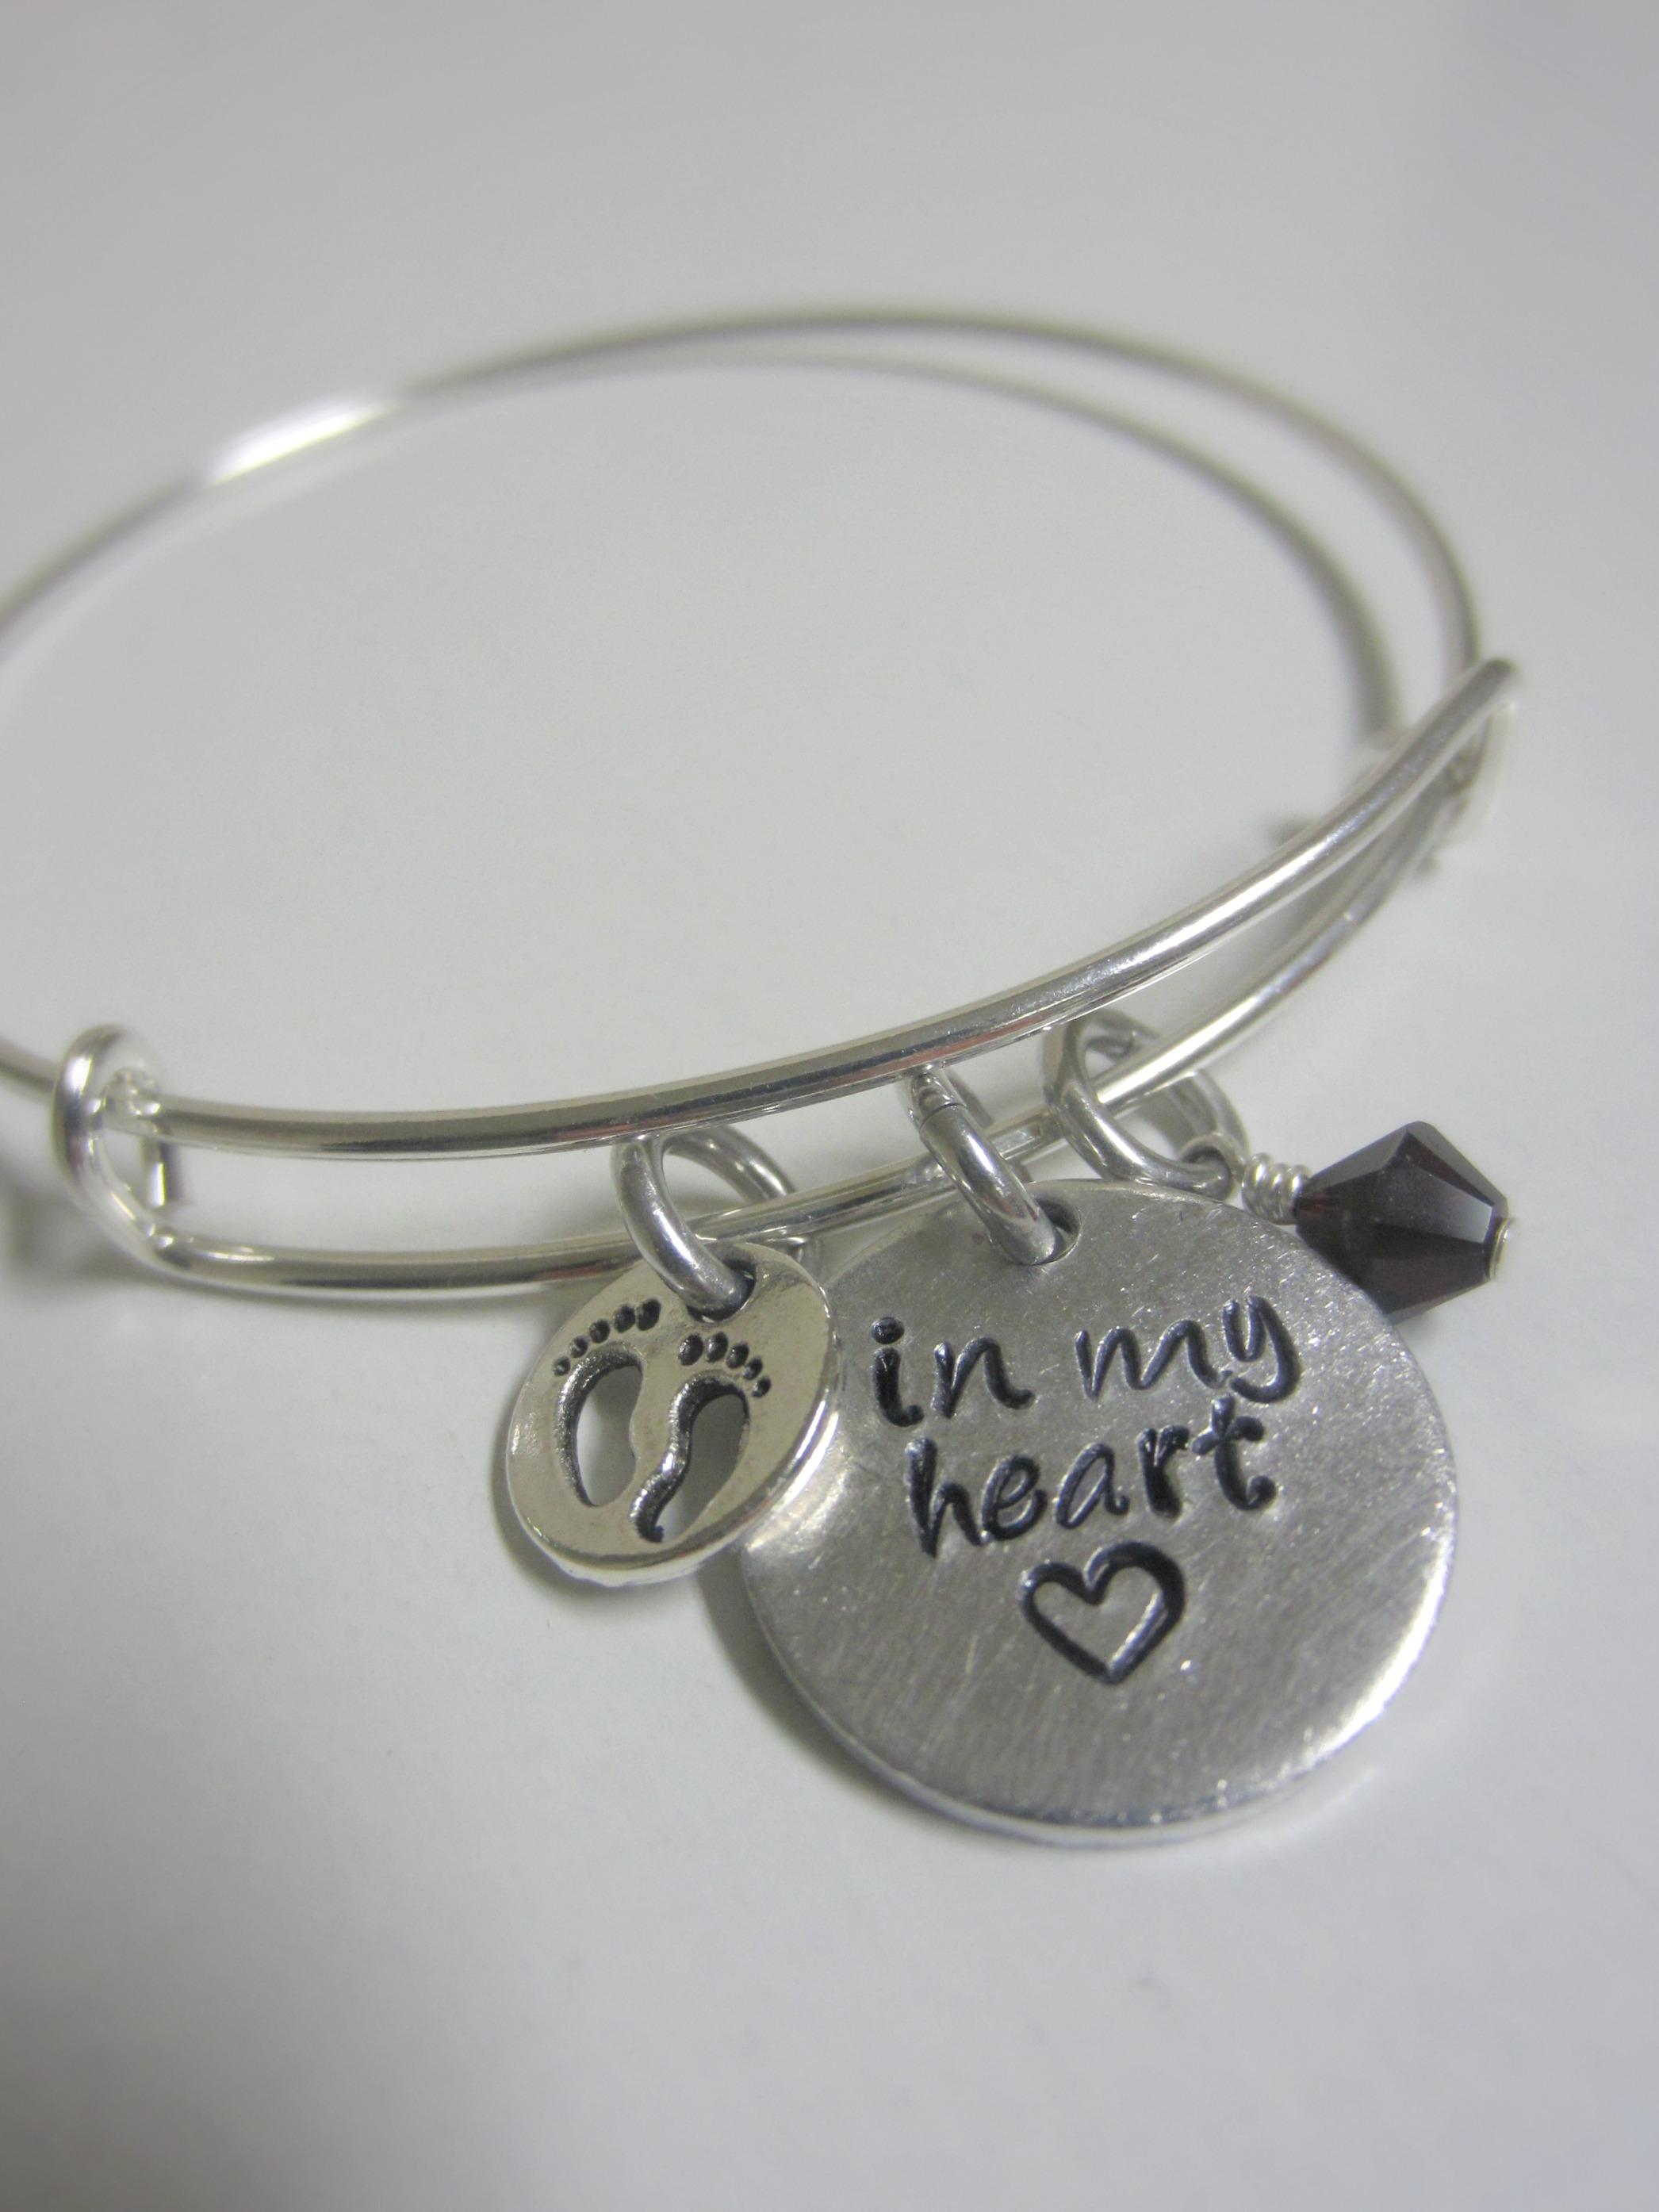 coping with miscarriage - in my heart bracelet